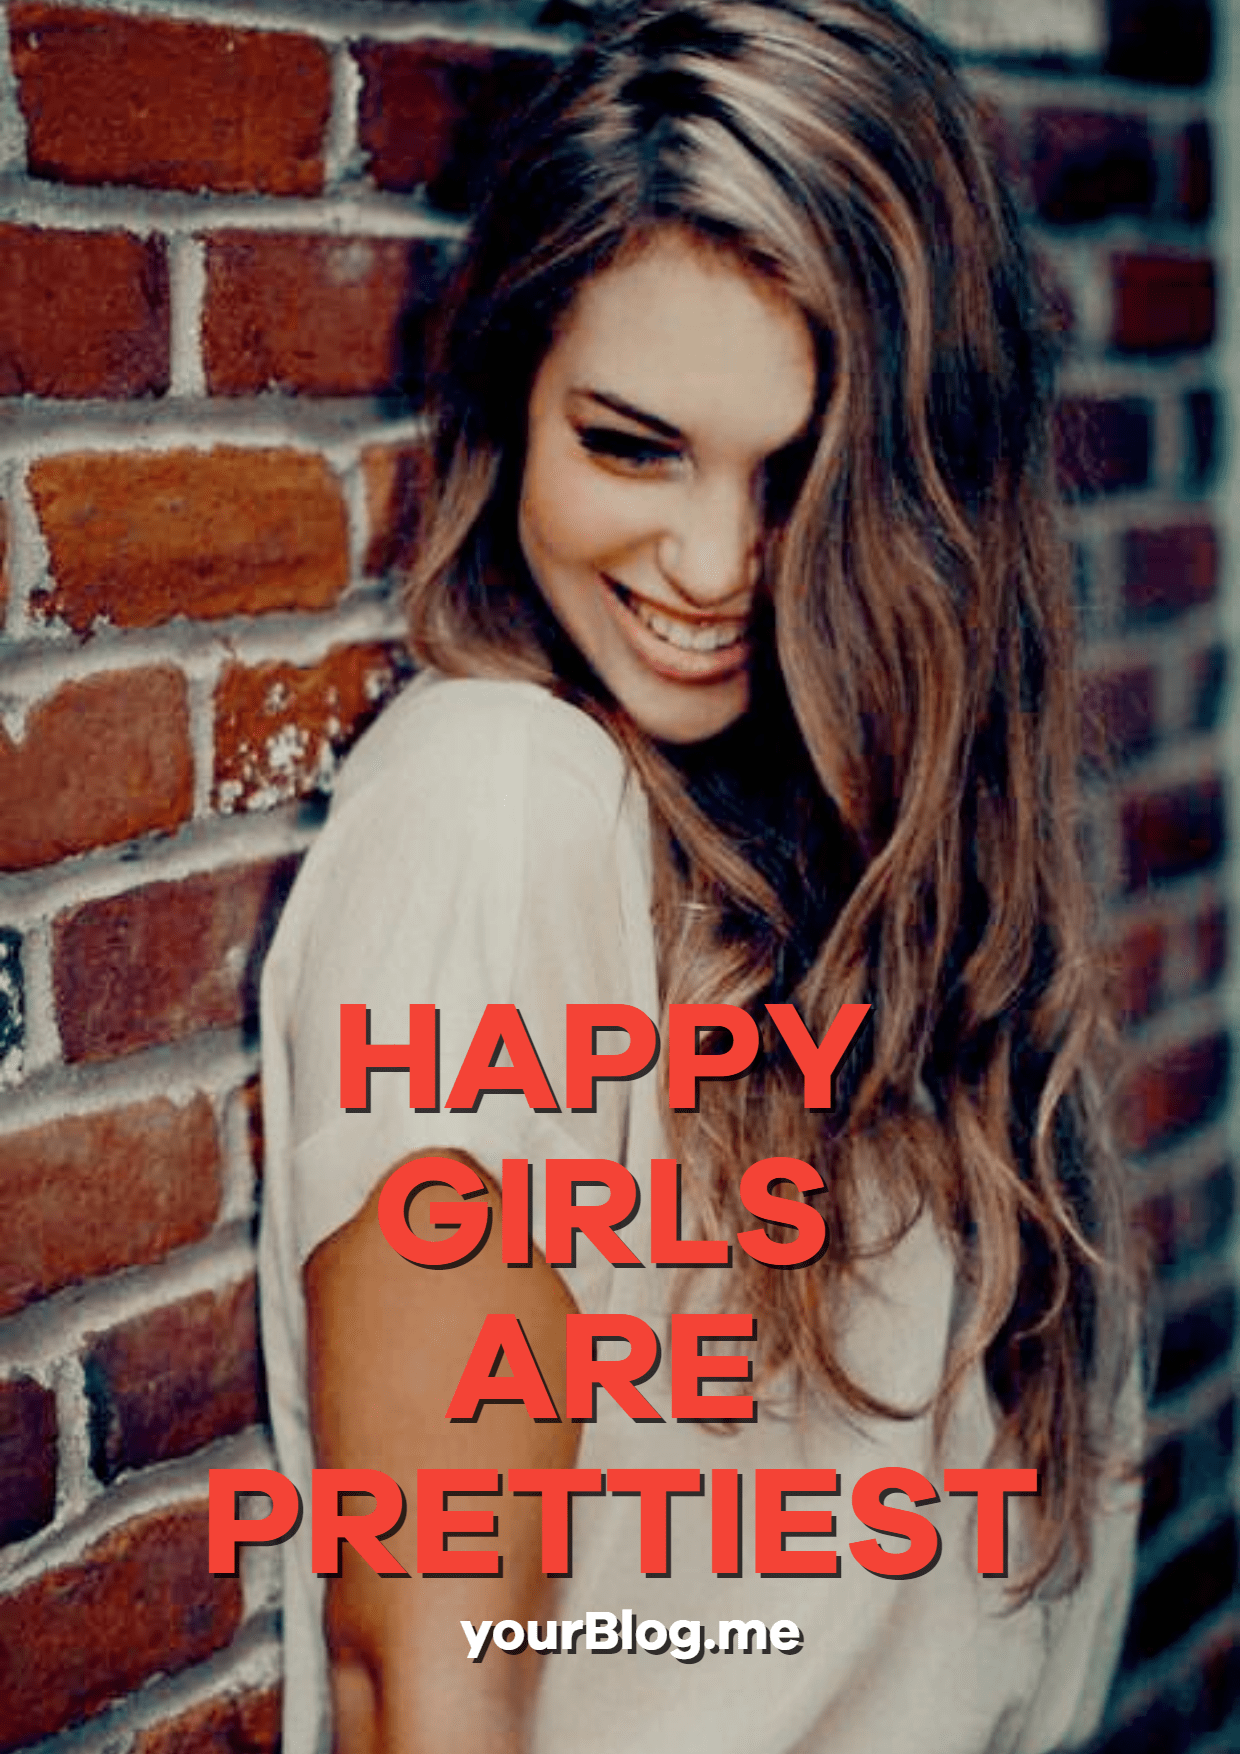 Hair,                Beauty,                Hairstyle,                Brown,                Long,                Poster,                Text,                Quote,                Love,                White,                Black,                Red,                 Free Image